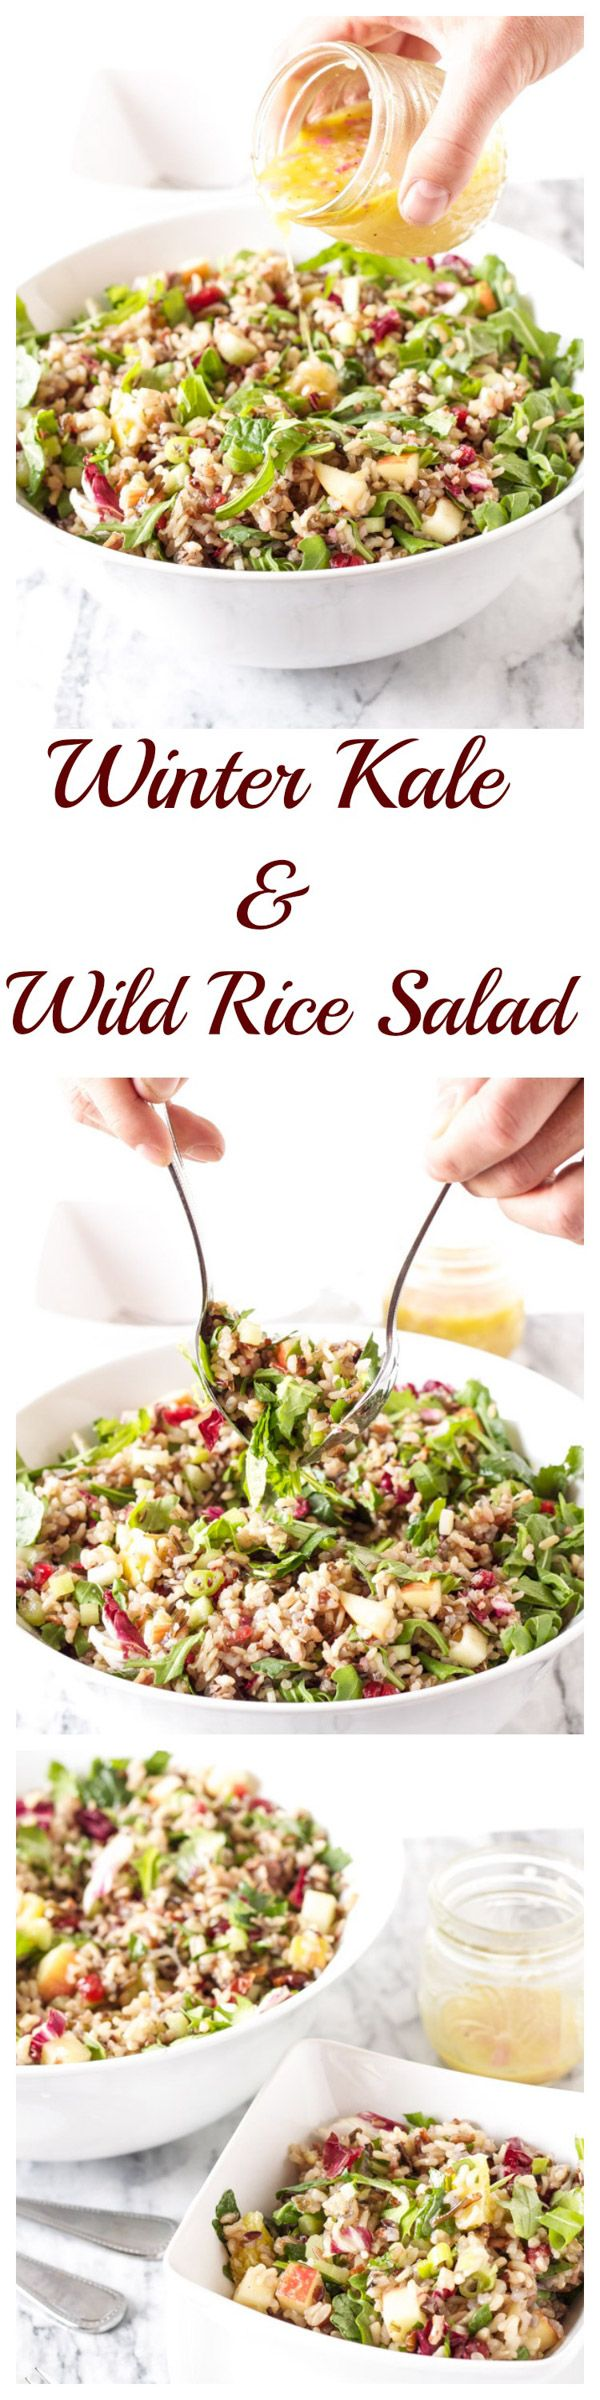 Winter Kale and Wild Rice Salad | www.reciperunner.com | A gorgeous, healthy…